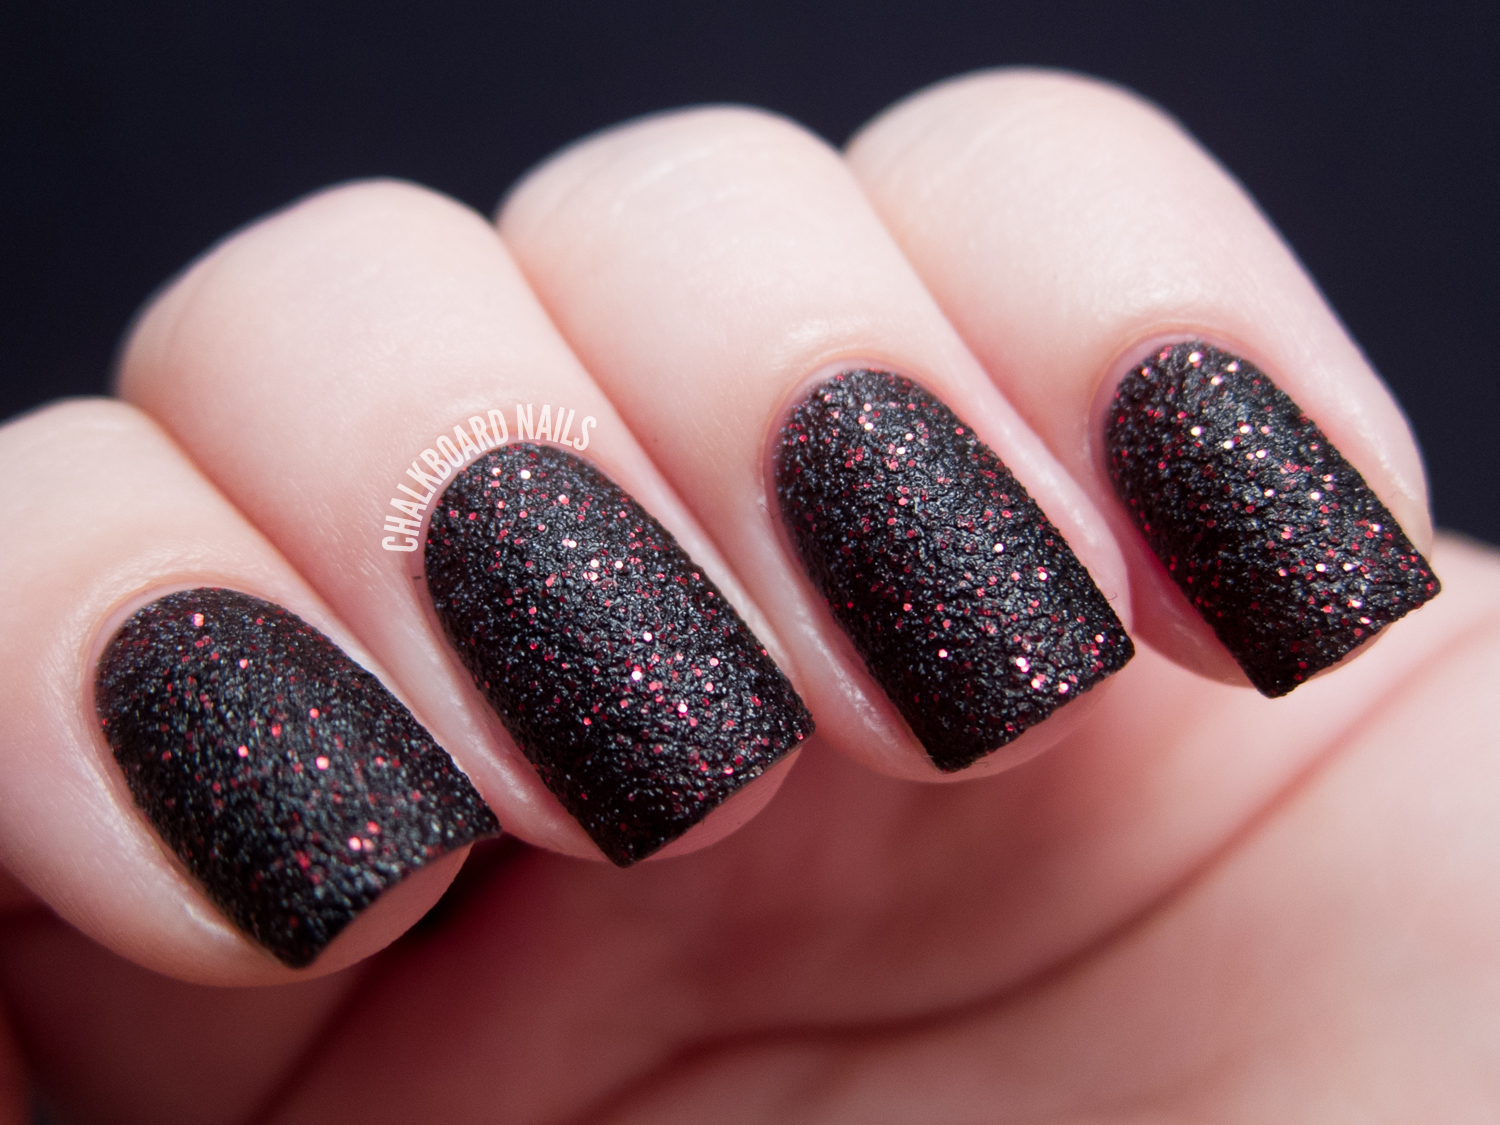 general-black-gothic-nail-design-ideas-with-slightly- - 20 Glitter Nail Designs For The Everyday Glamazon